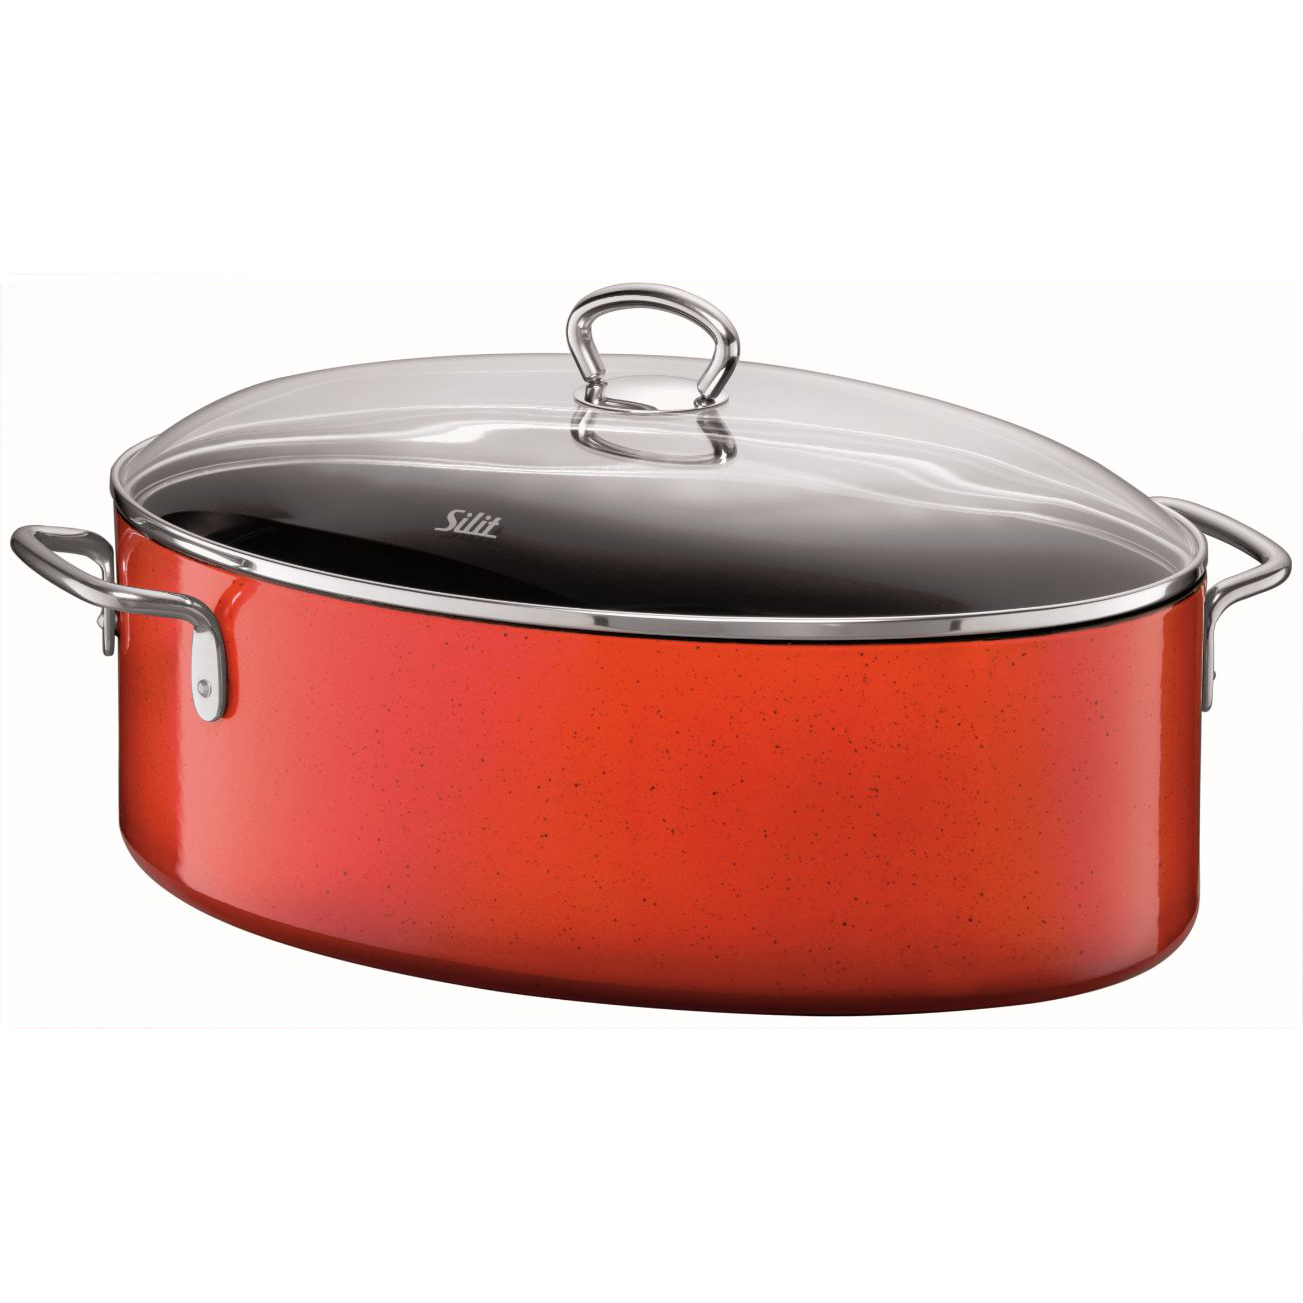 WMF Silit Passion 4 Energy Red Oval Enameled Steel Roasting Pan with Lid, 8.5 Quart